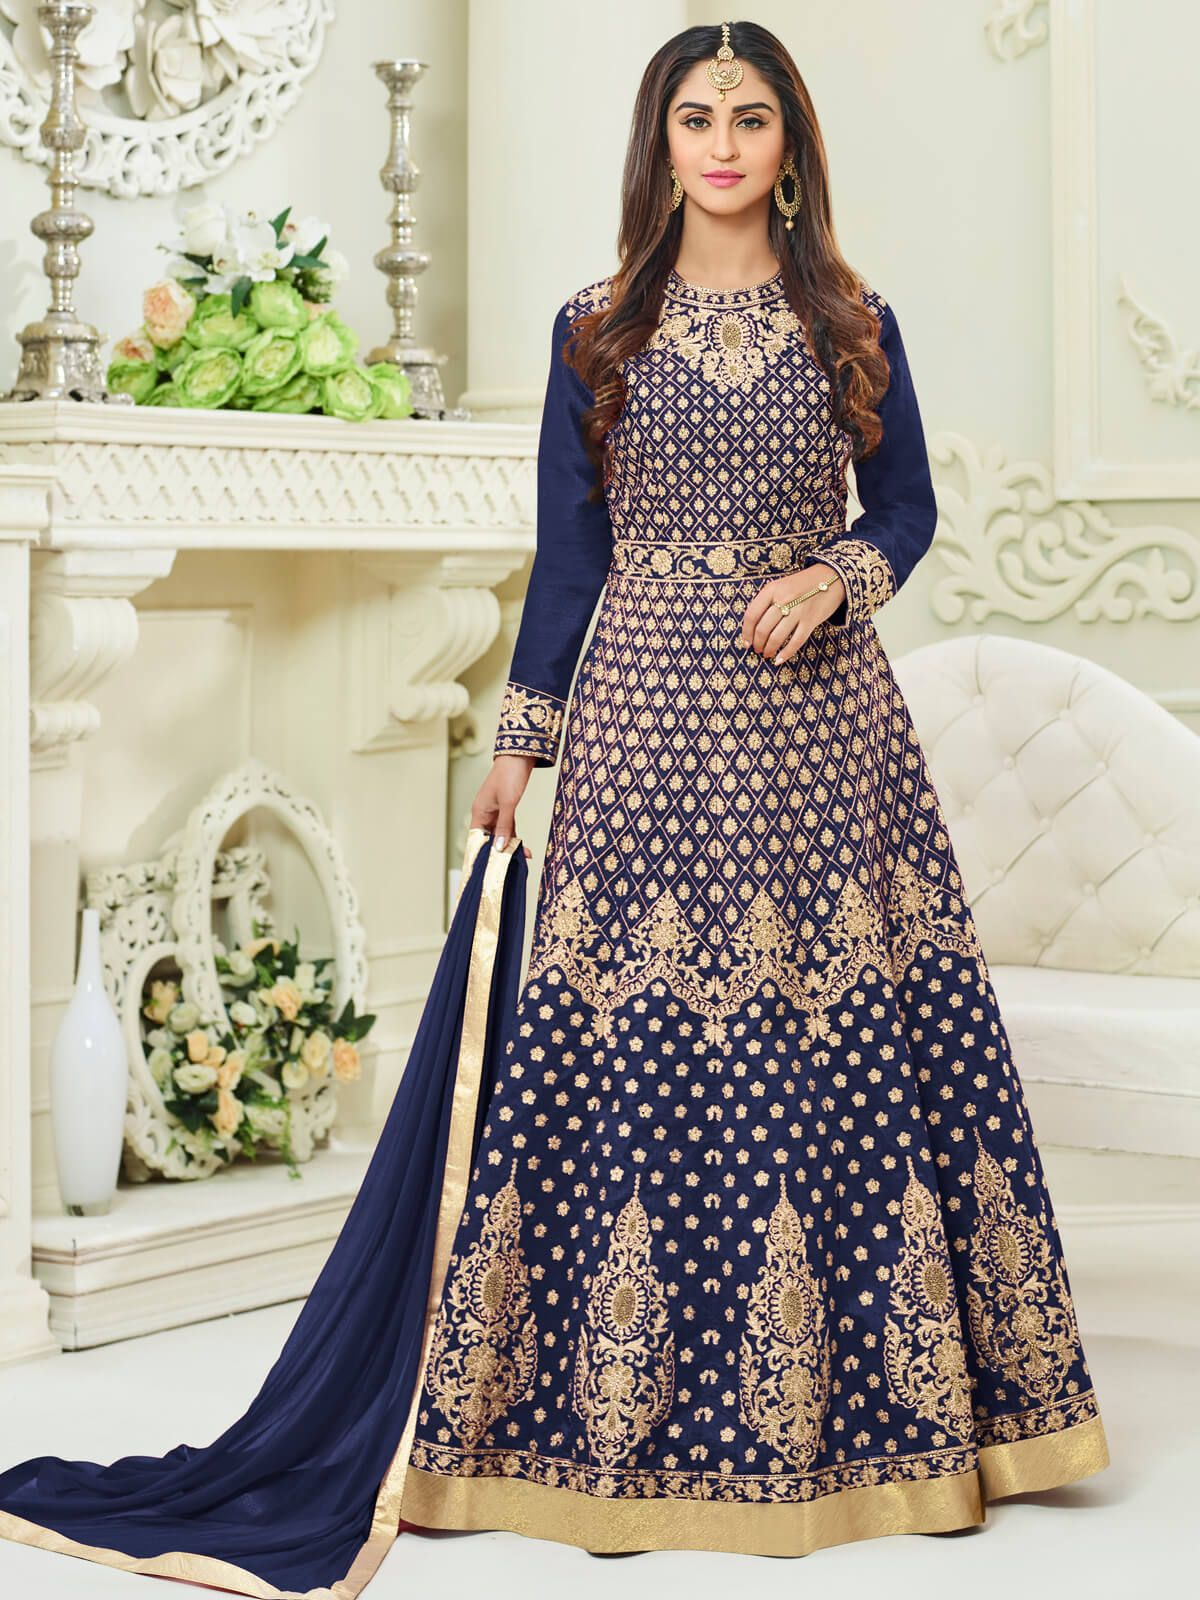 Fetching navy blue taffeta party wear anarkali suit. Having fabric taffeta, silk, santoon and nazneen. This attire is nicely designed with embroidery work, resham embroidery work, zari work, cording work, stone work and zari border. Comes with matching bottom and dupatta. #mydesiwear #AnarkaliSuits #Silk #SalwarSuits #OnlineShopping #FloorLengthAnarkali #PunjabiSuits #PartyWearSalwarSuits #AnarkaliSalwarKameez #BuyWeddingSuits #WeddingTrendz #StyleWedding #WeddingCollection #StyleBride